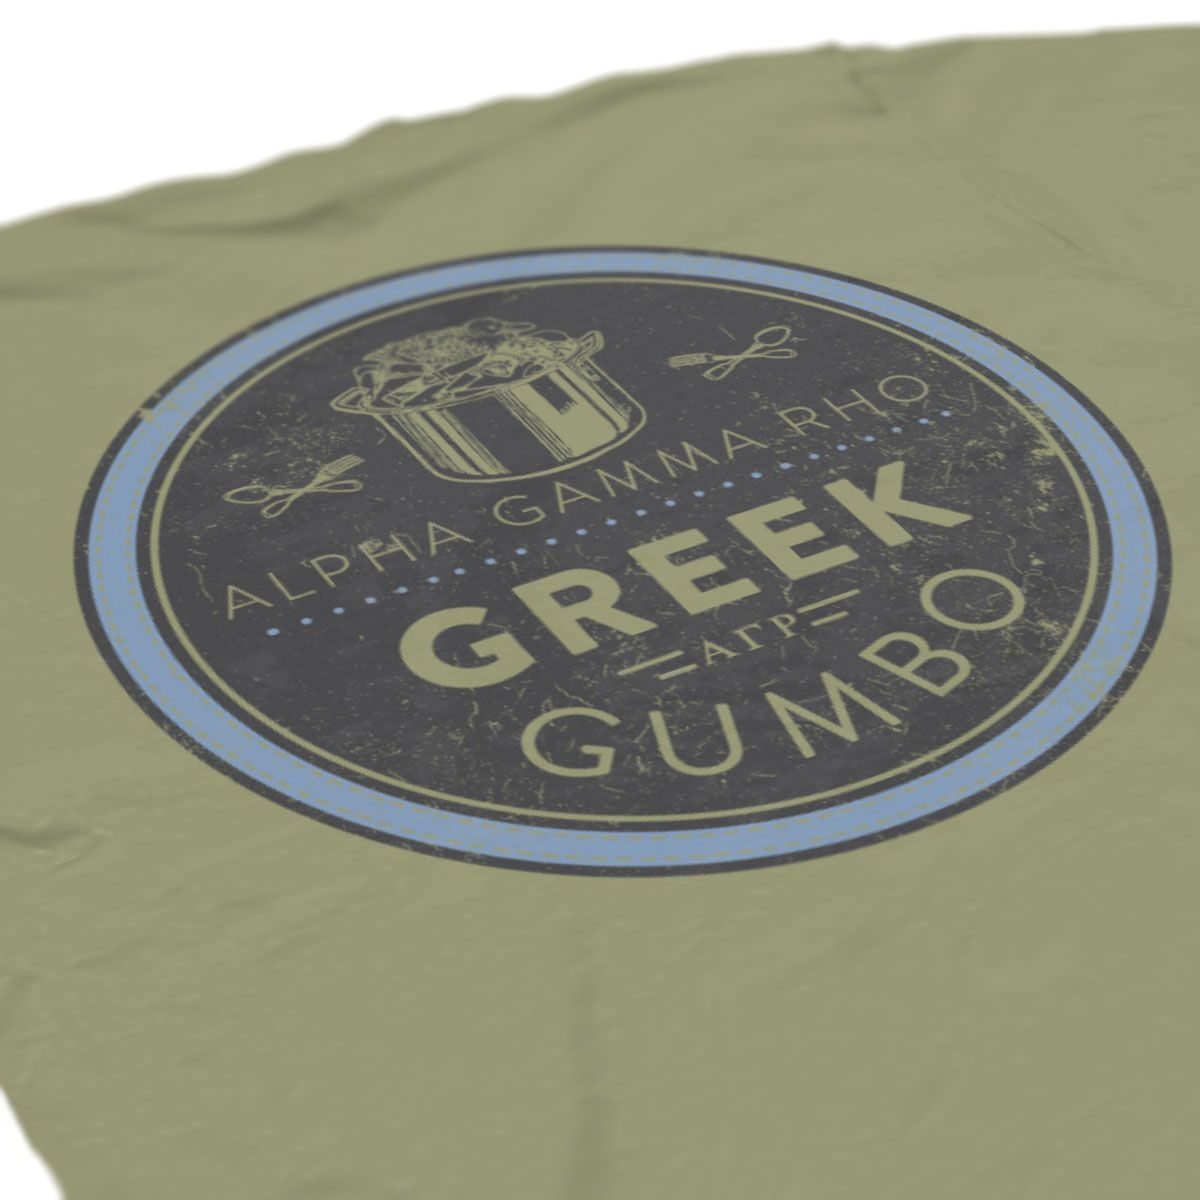 alpha gamma rho agr greek gumbo design fraternity tank alpha gamma rho agr greek gumbo design fraternity tank fraternity t shirts